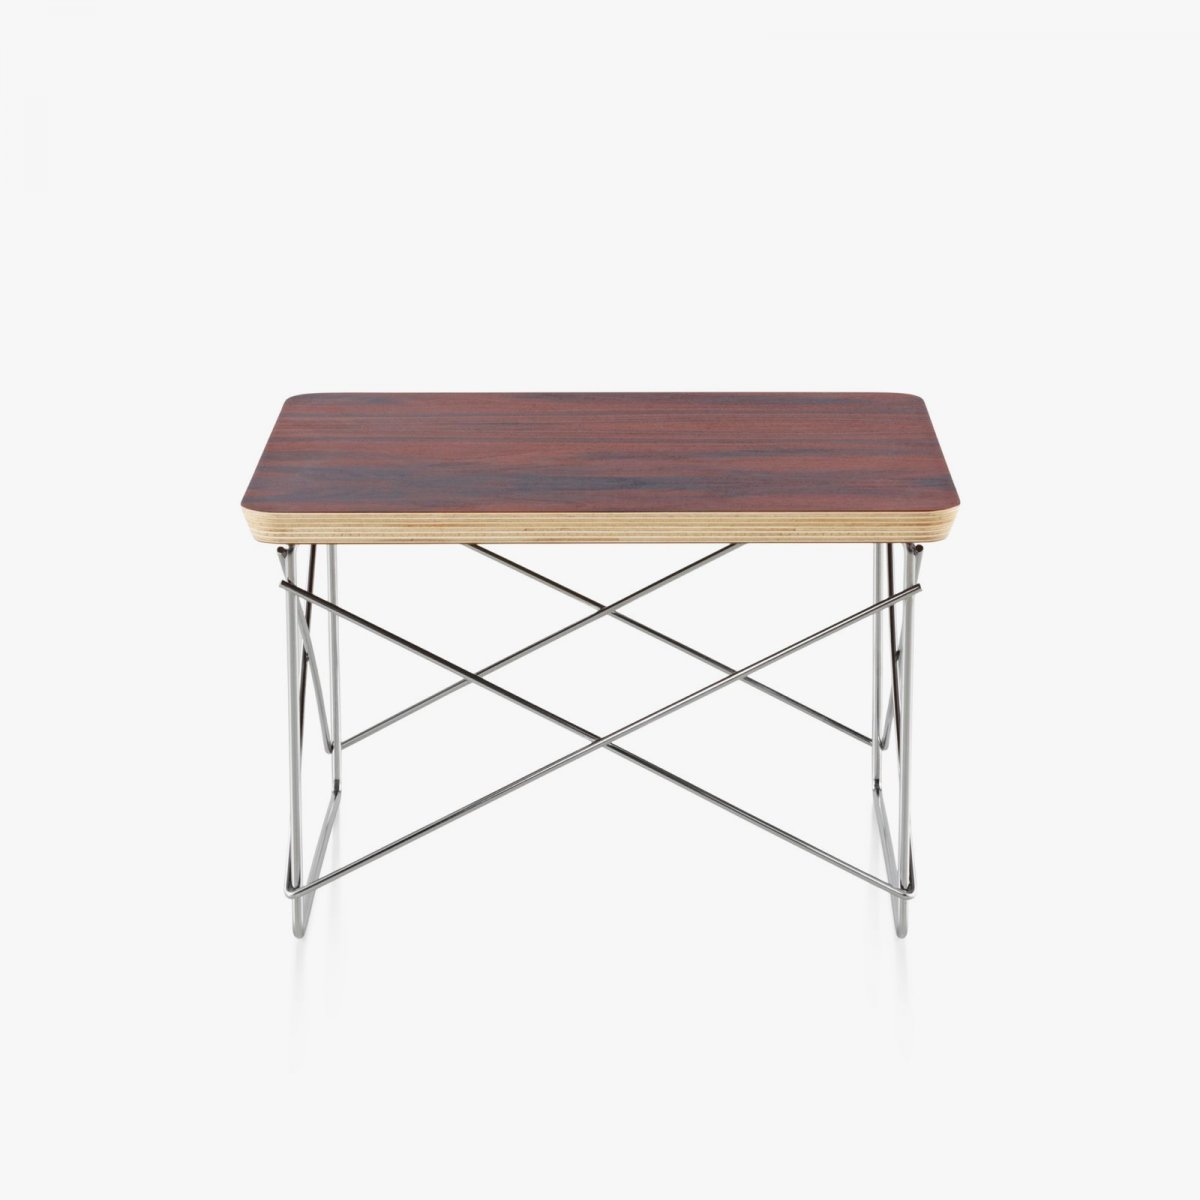 Eames Wire Base Low Table, santos palisander top with trivalent chrome base.